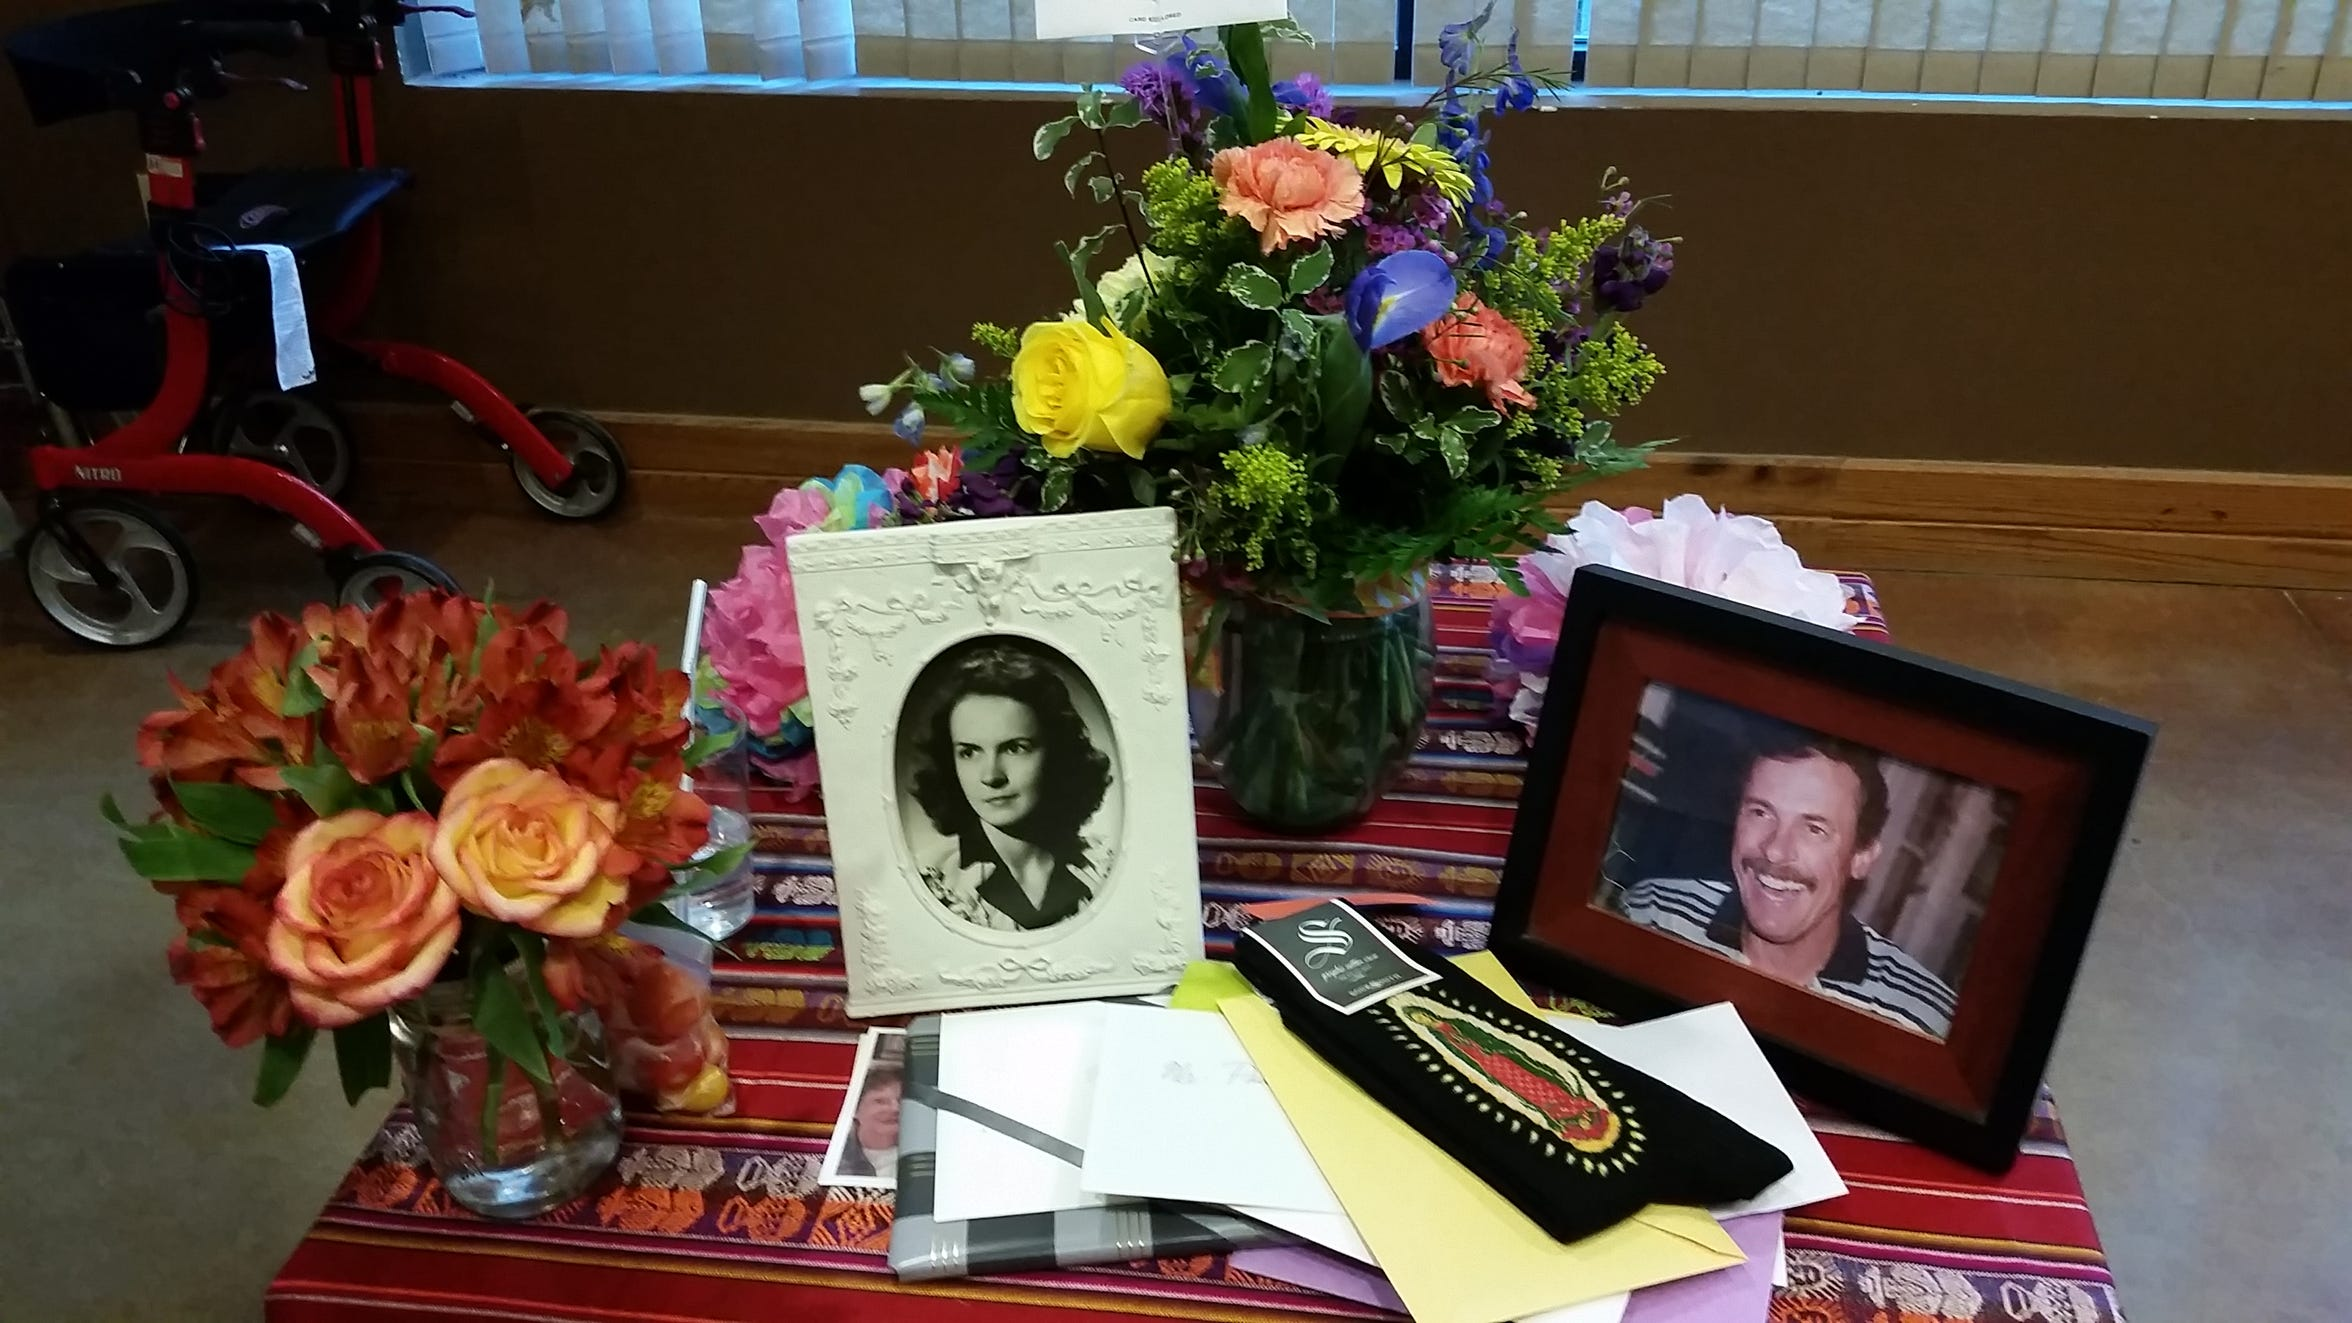 A memorial table is displayed in honor of the late Mary Helen Daniels Taylor and John Paul Taylor Jr. during J. Paul Taylor's 99th birthday celebration at the New Mexico Farm & Ranch Heritage Museum in August 2019.